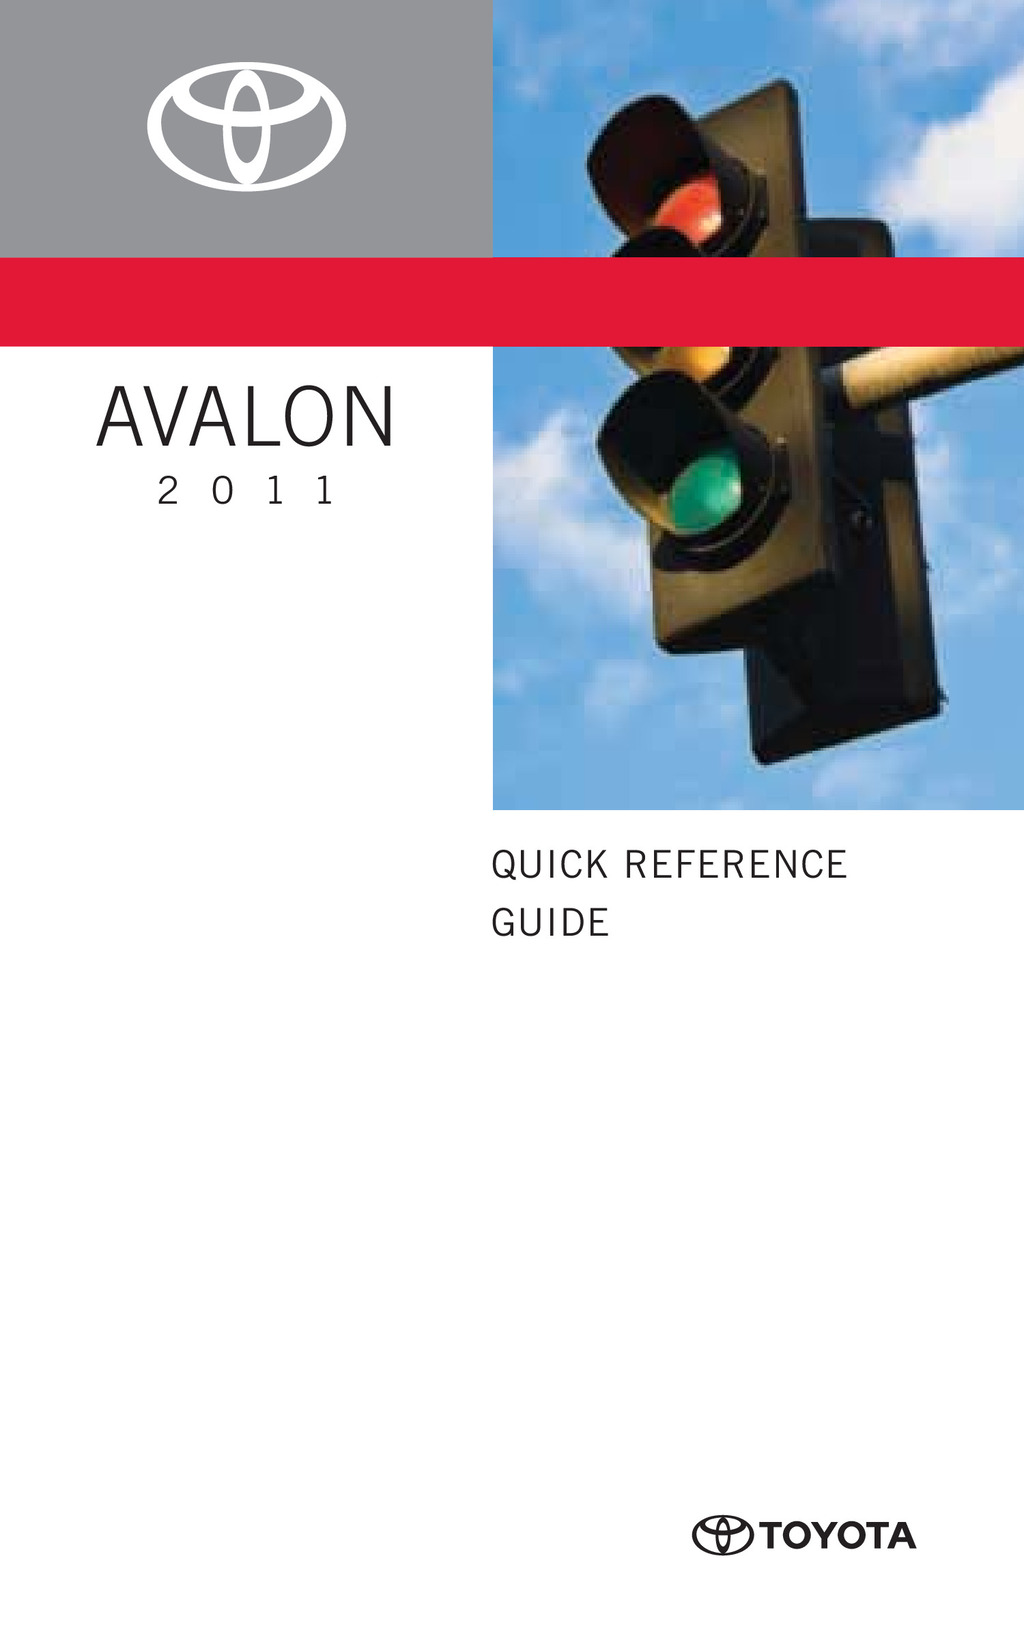 2011 Toyota Avalon owners manual